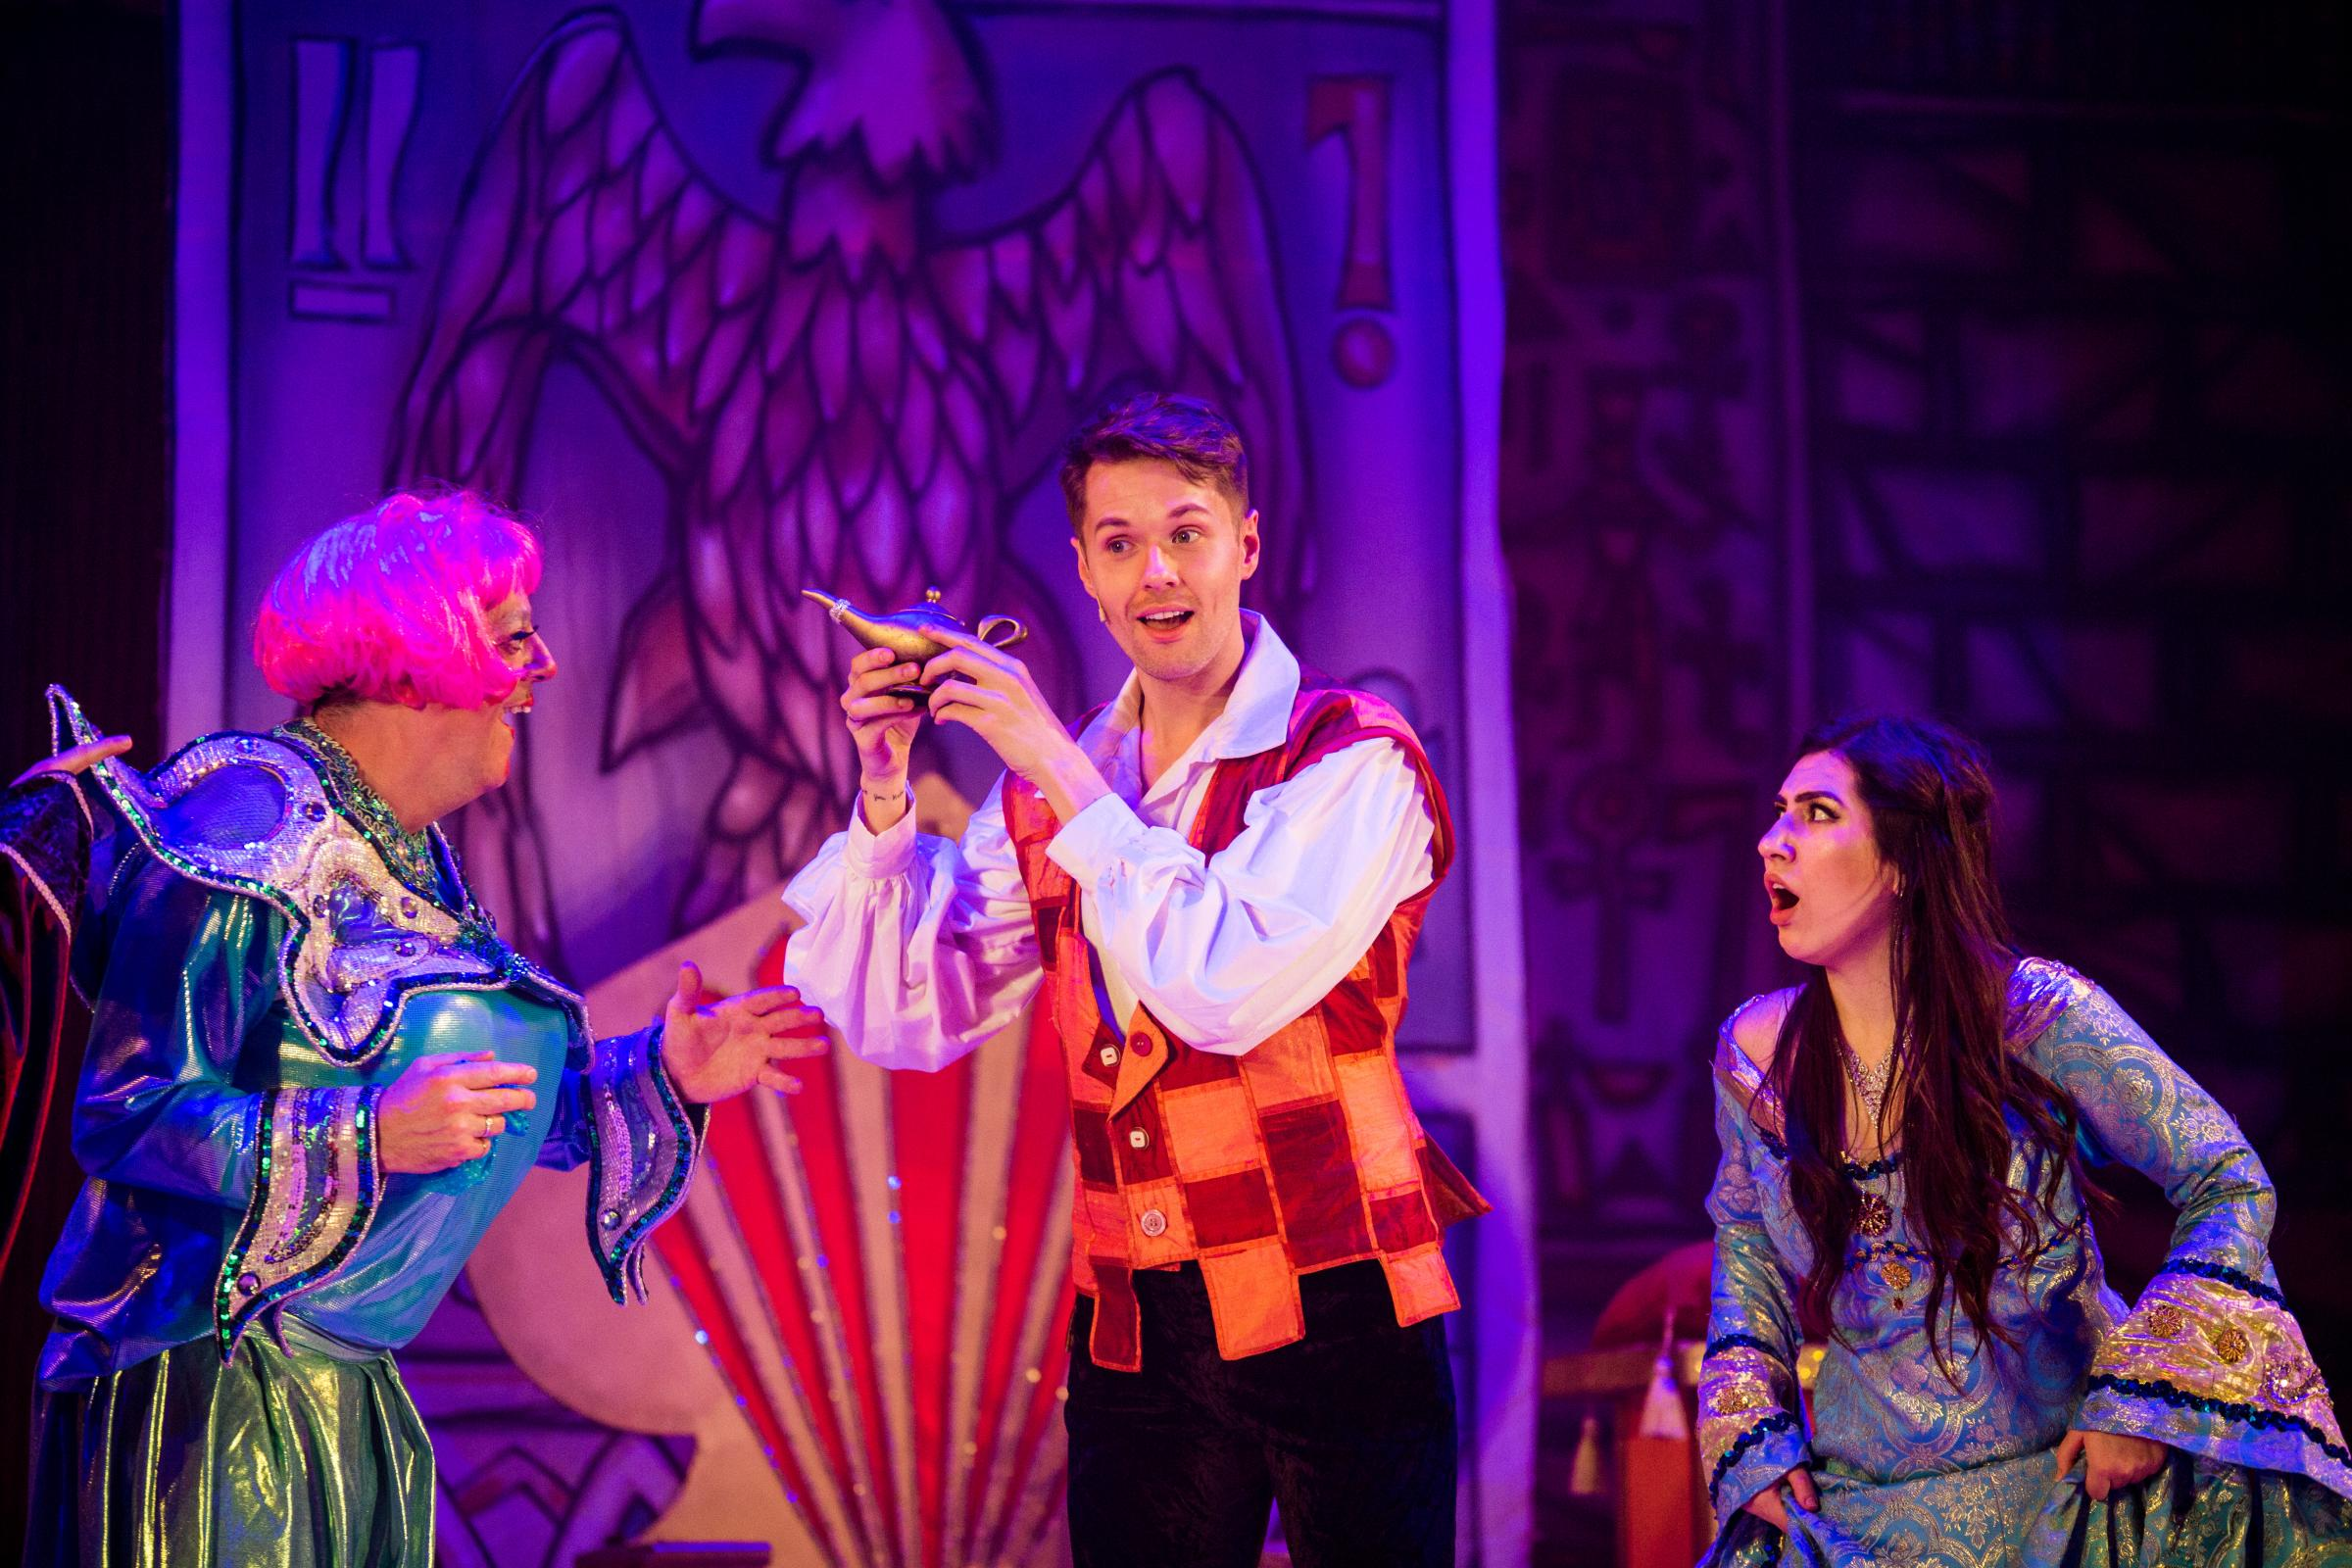 Panto time at Swindon's Wyvern Theatre Pictures by Anthony Hunt Photography